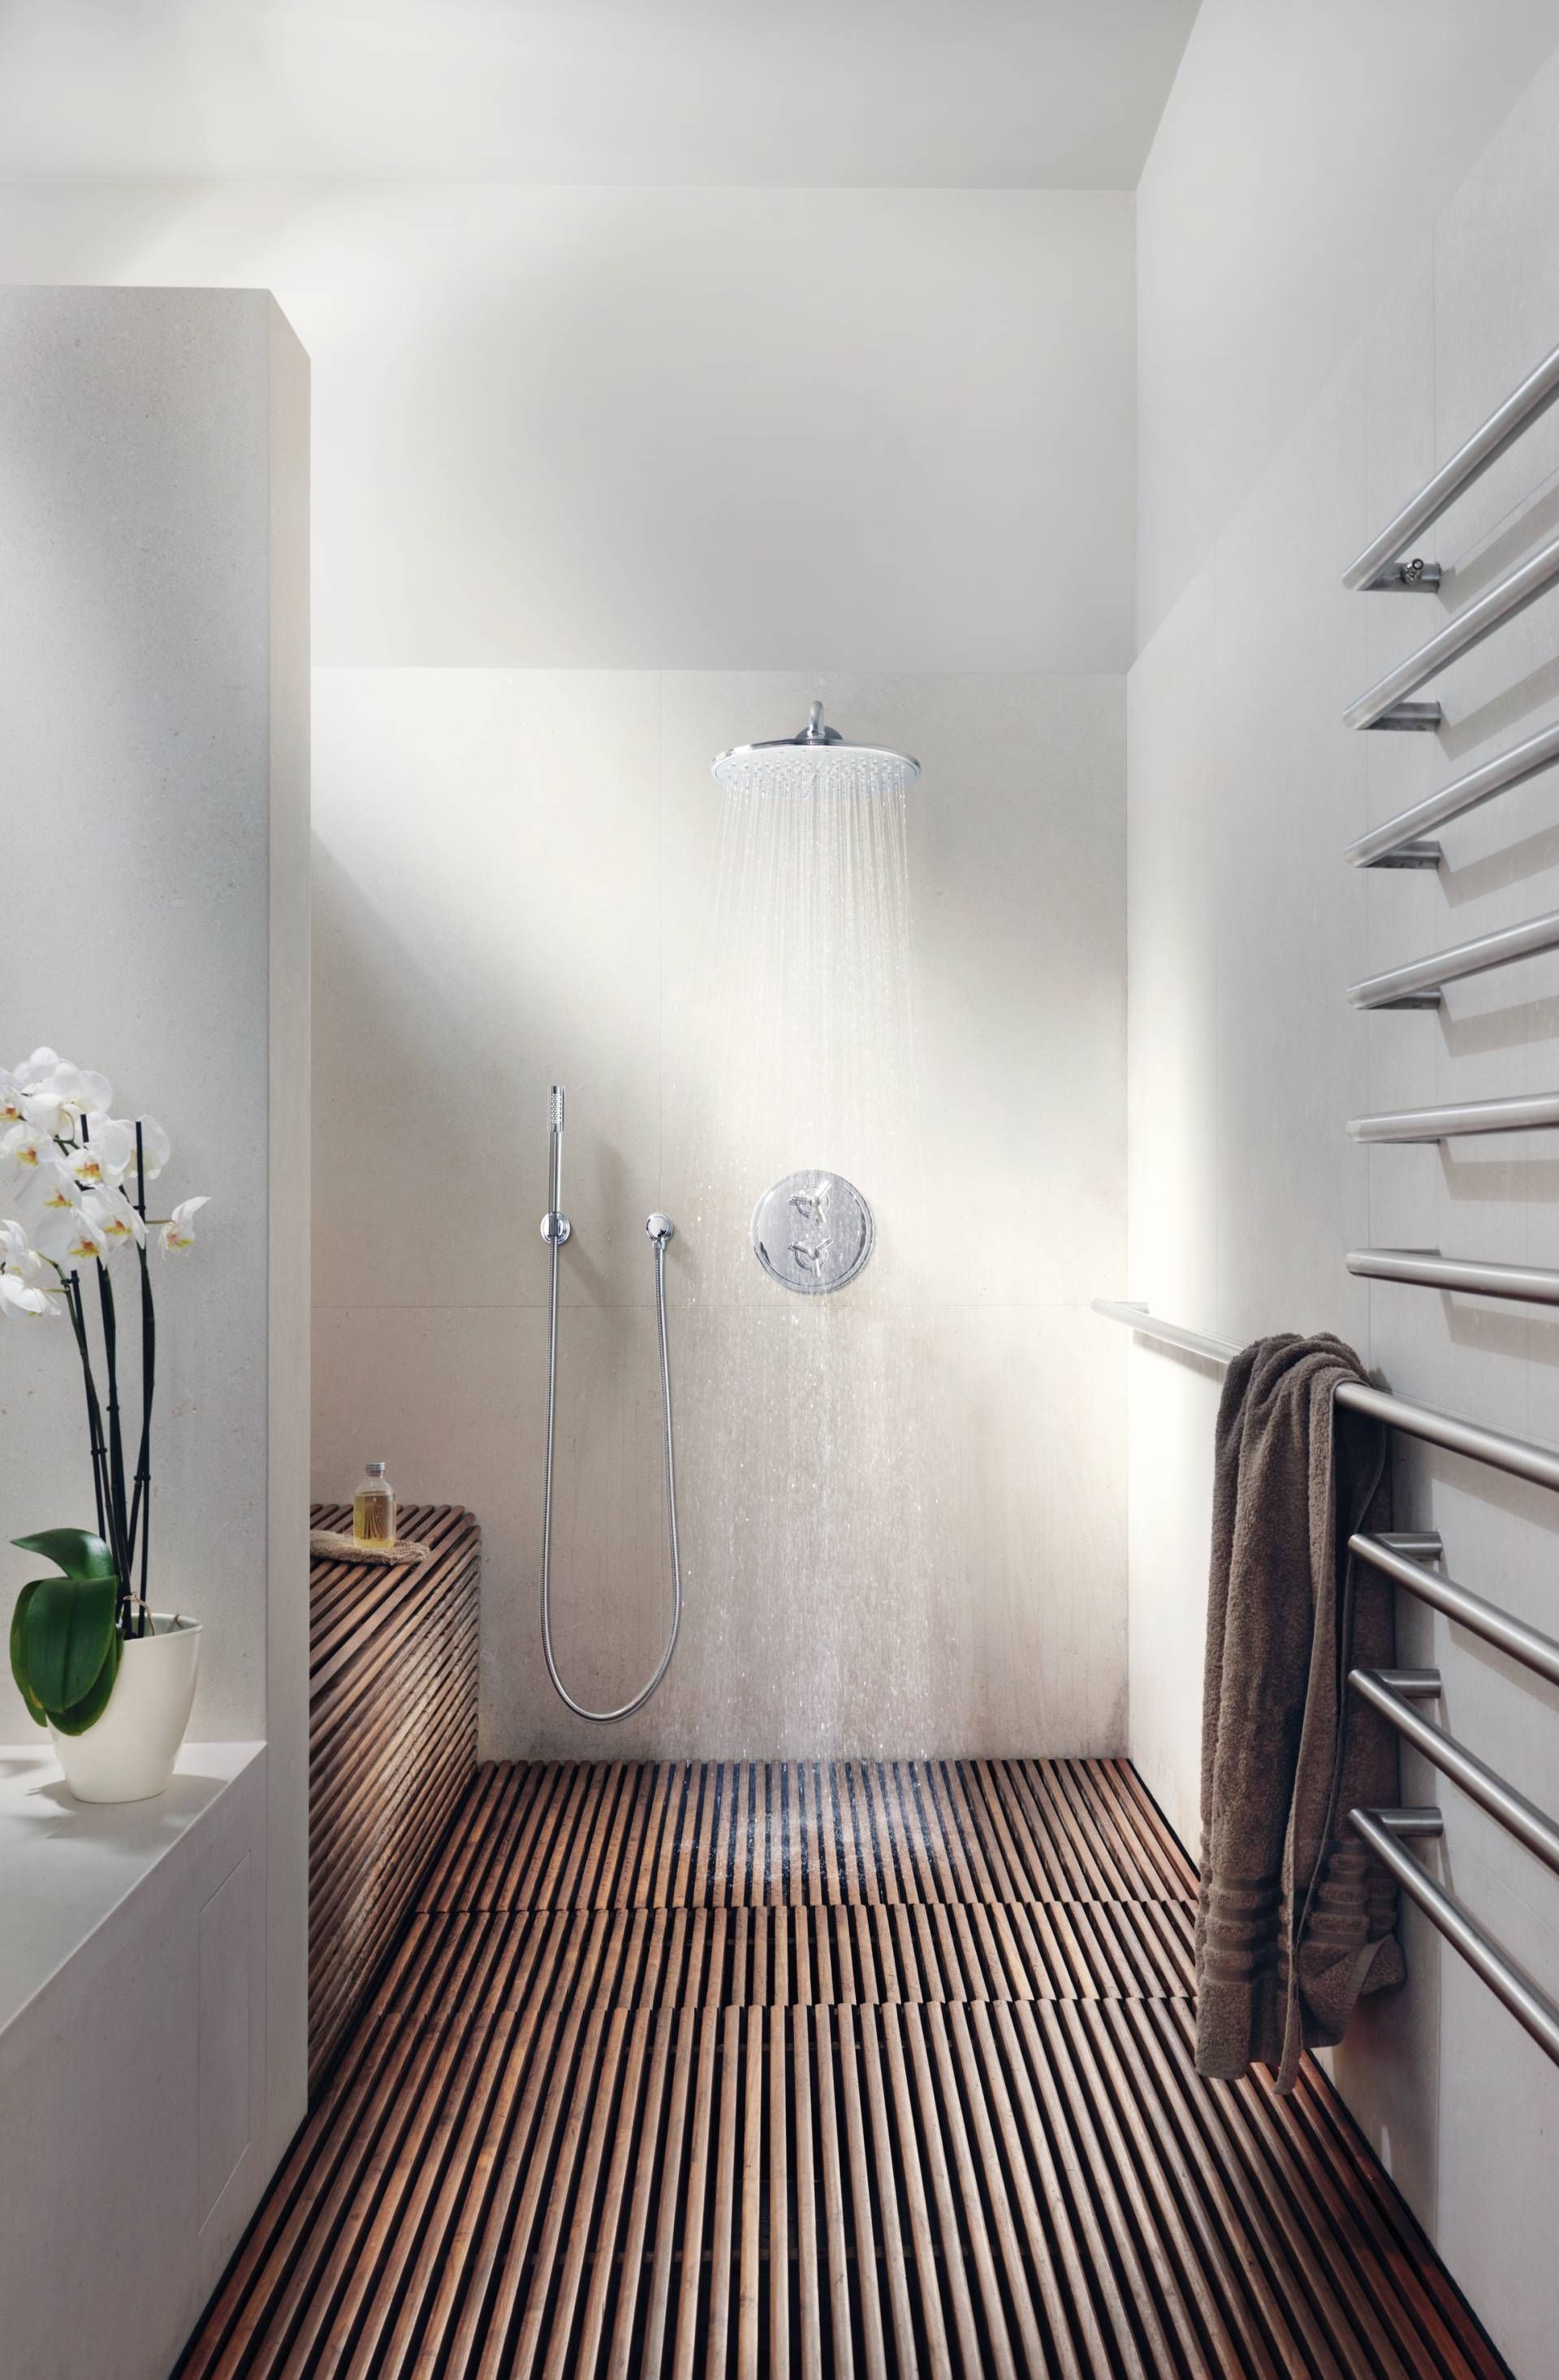 Wood Slat Shower Floors Are Heavily Inspired By Scandinavian Or